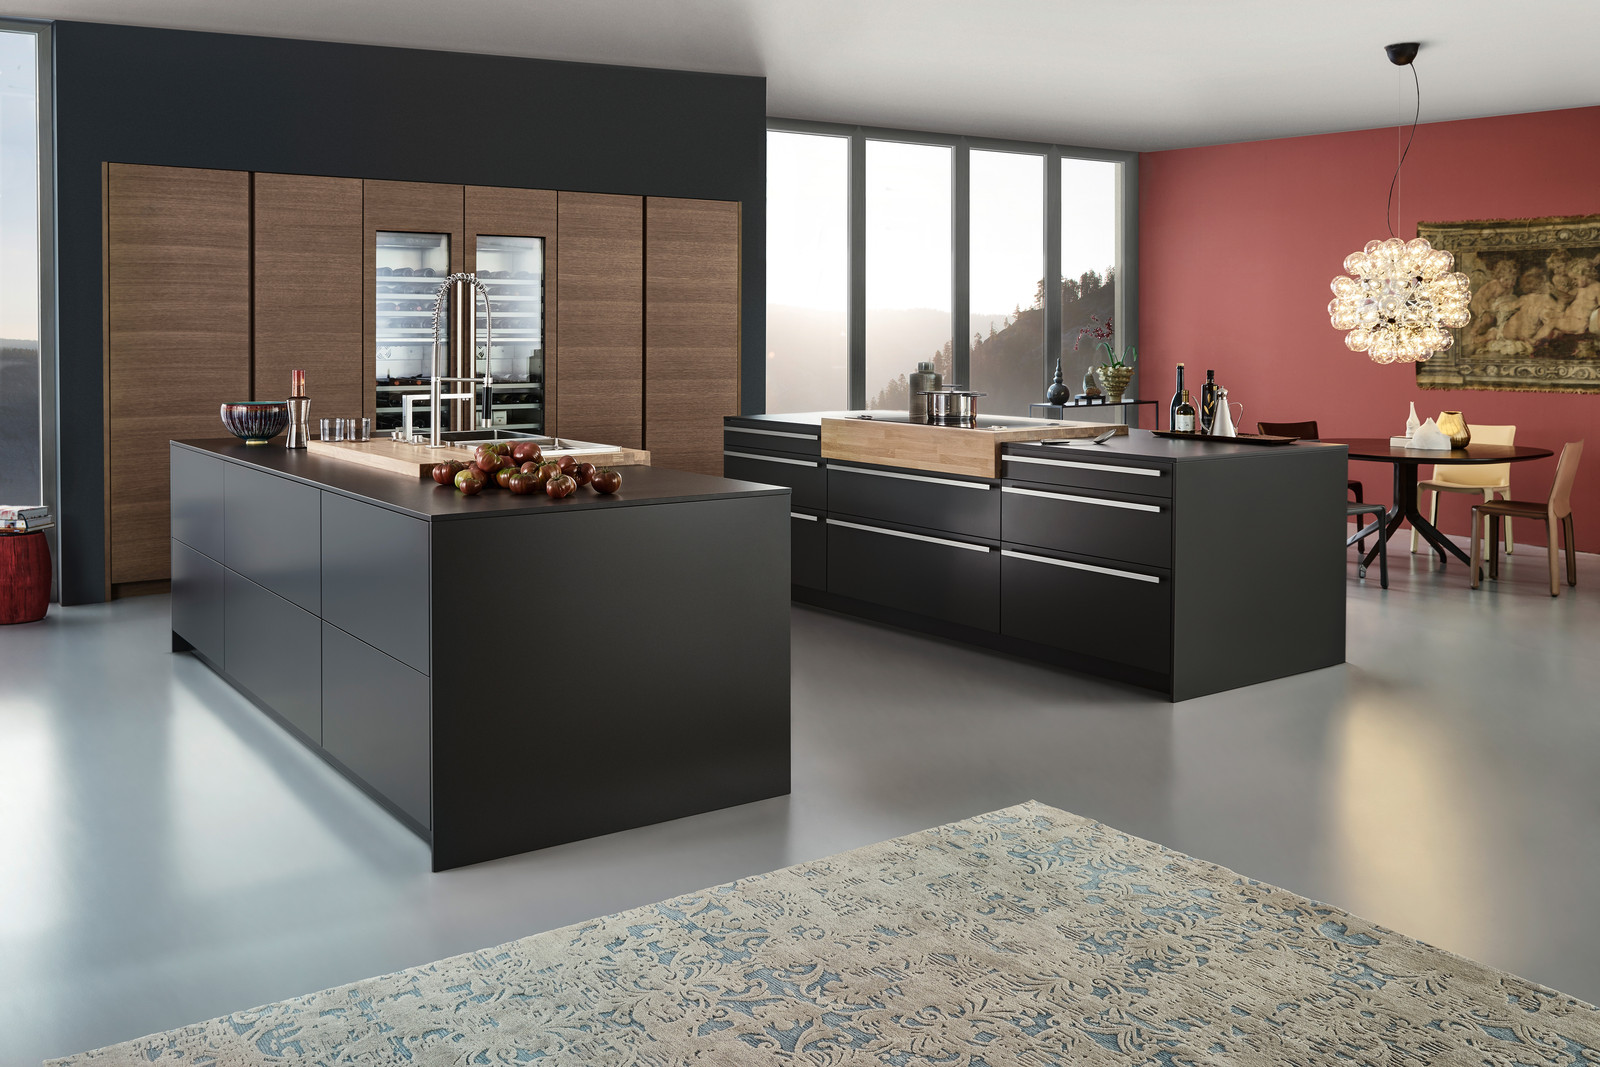 ... VANEER KITCHENS, LAMINATE, HIGH GLOOS KITCHEN, WHITE KITCHEN. Kitchens  In Orange County, Kitchens In Irvine, Kitchens In Southern California, ...